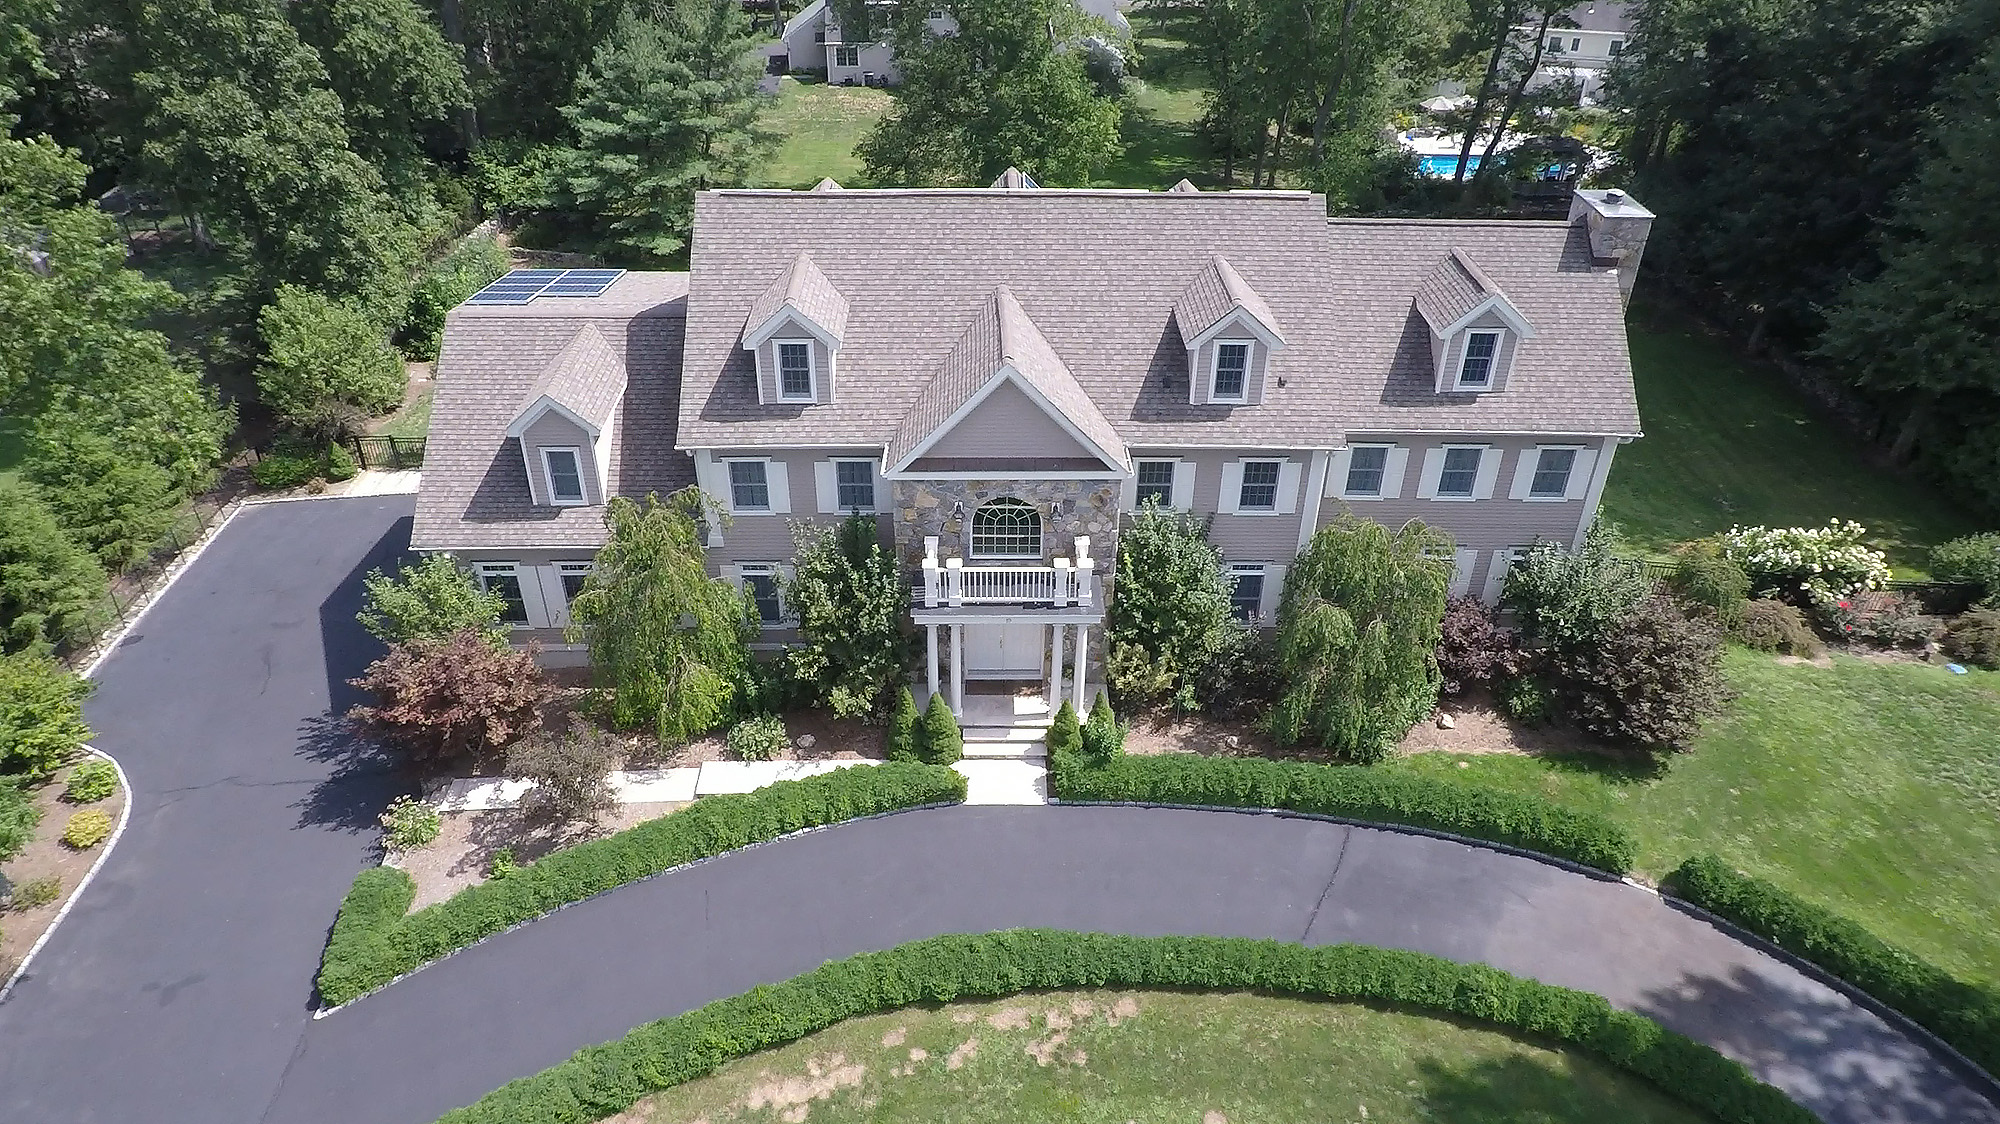 Single Family Home for Sale at Luxury in Westover 19 West Hill Road Stamford, Connecticut 06902 United States